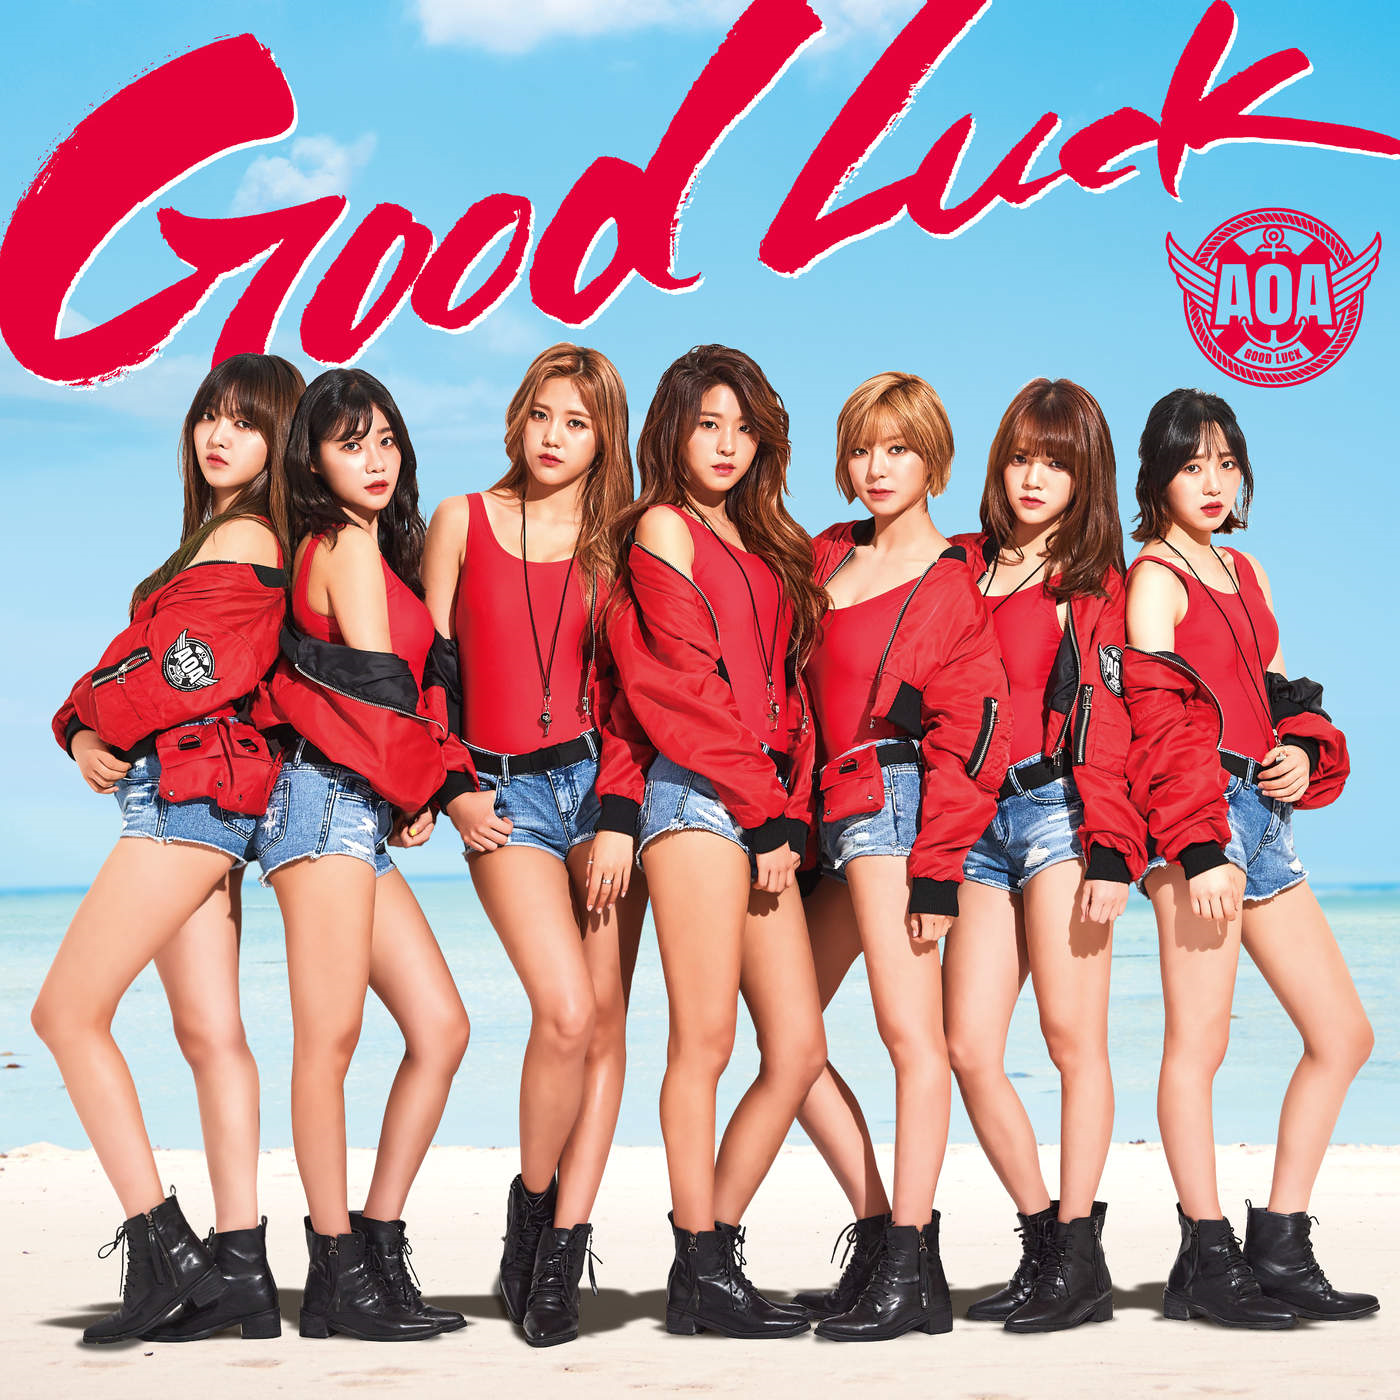 Good Luck (AOA single)